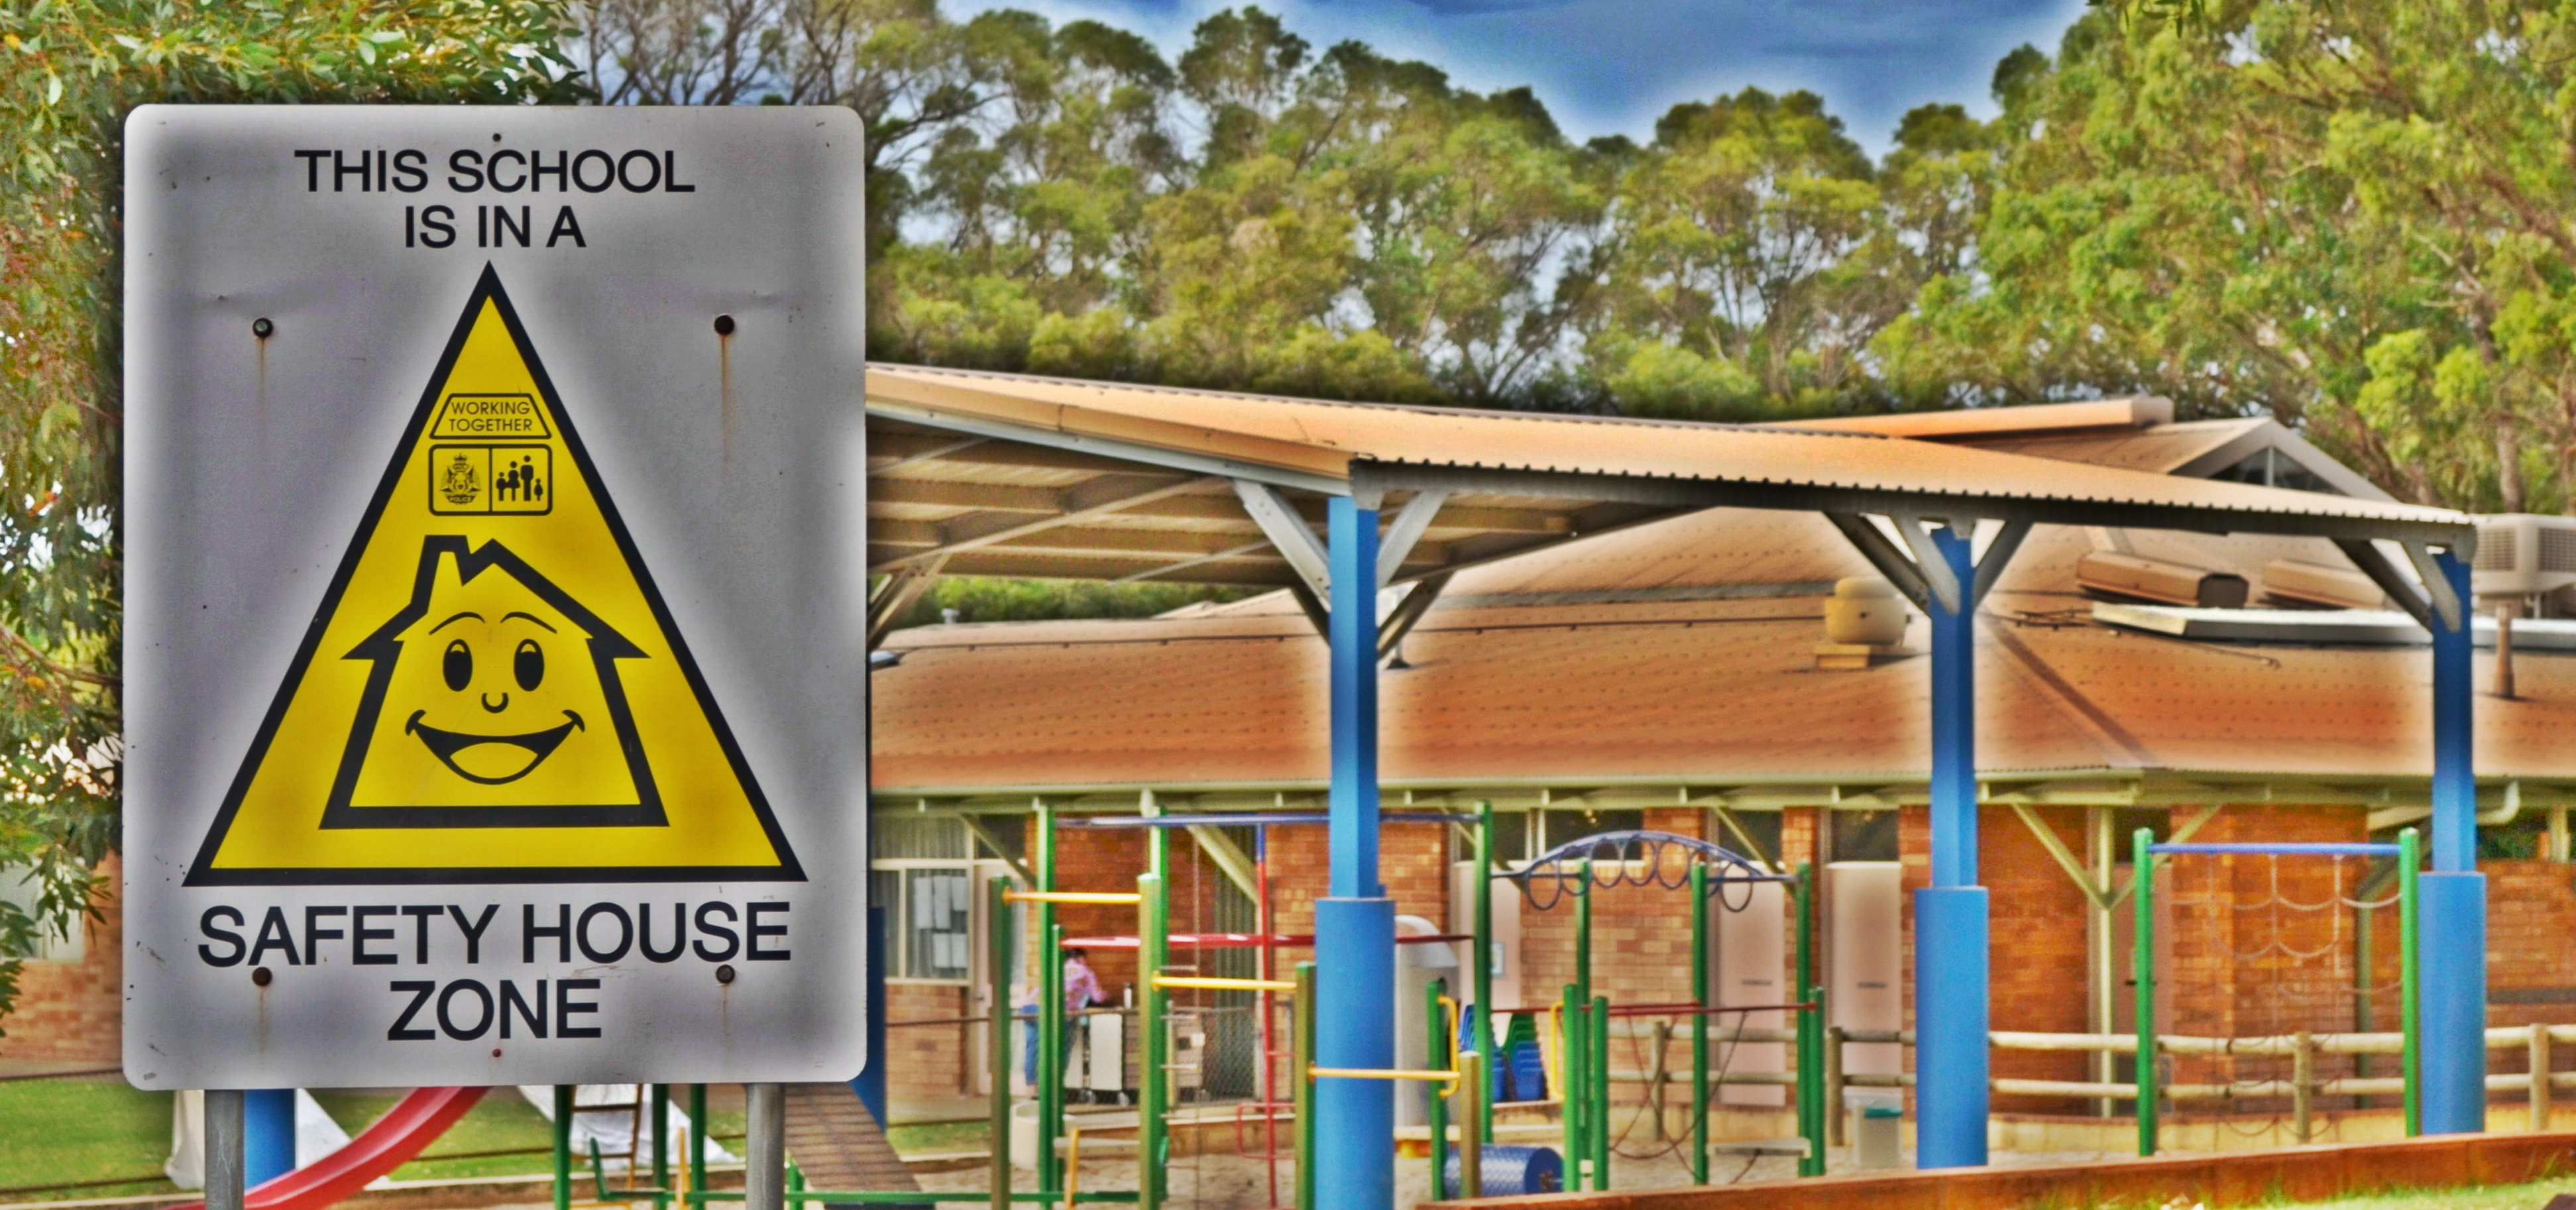 School safety house sign